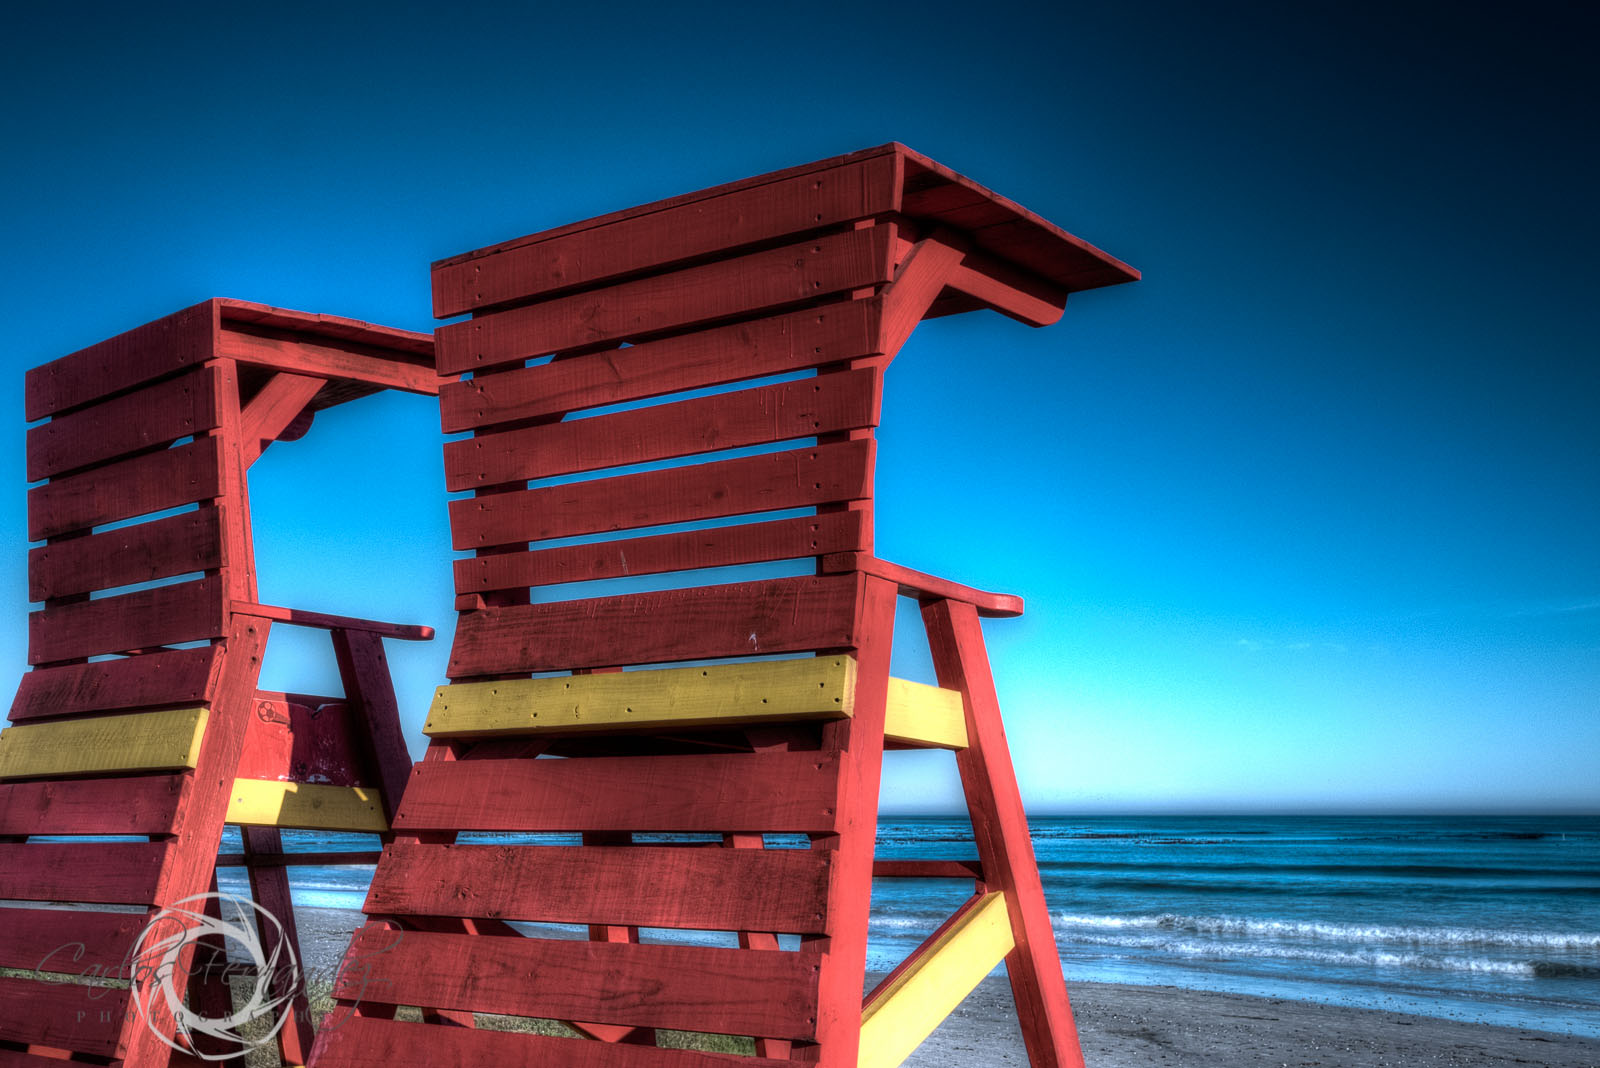 Lifeguard Stands at Melkbosstrand - 142/365